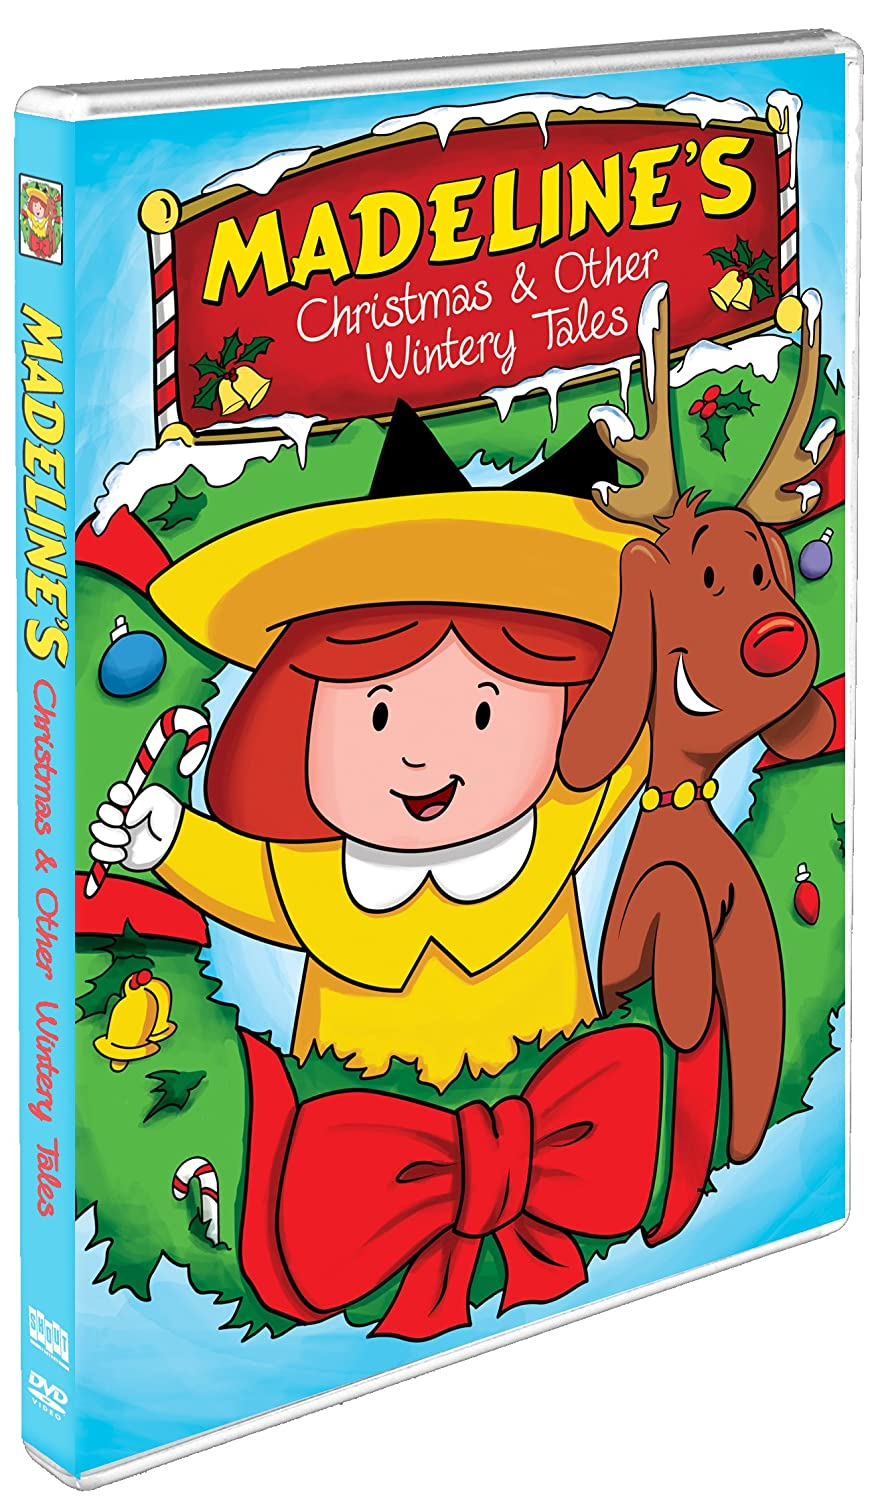 Amazon.com: Madeline's Christmas And Other Wintery Tales: Andrea ...